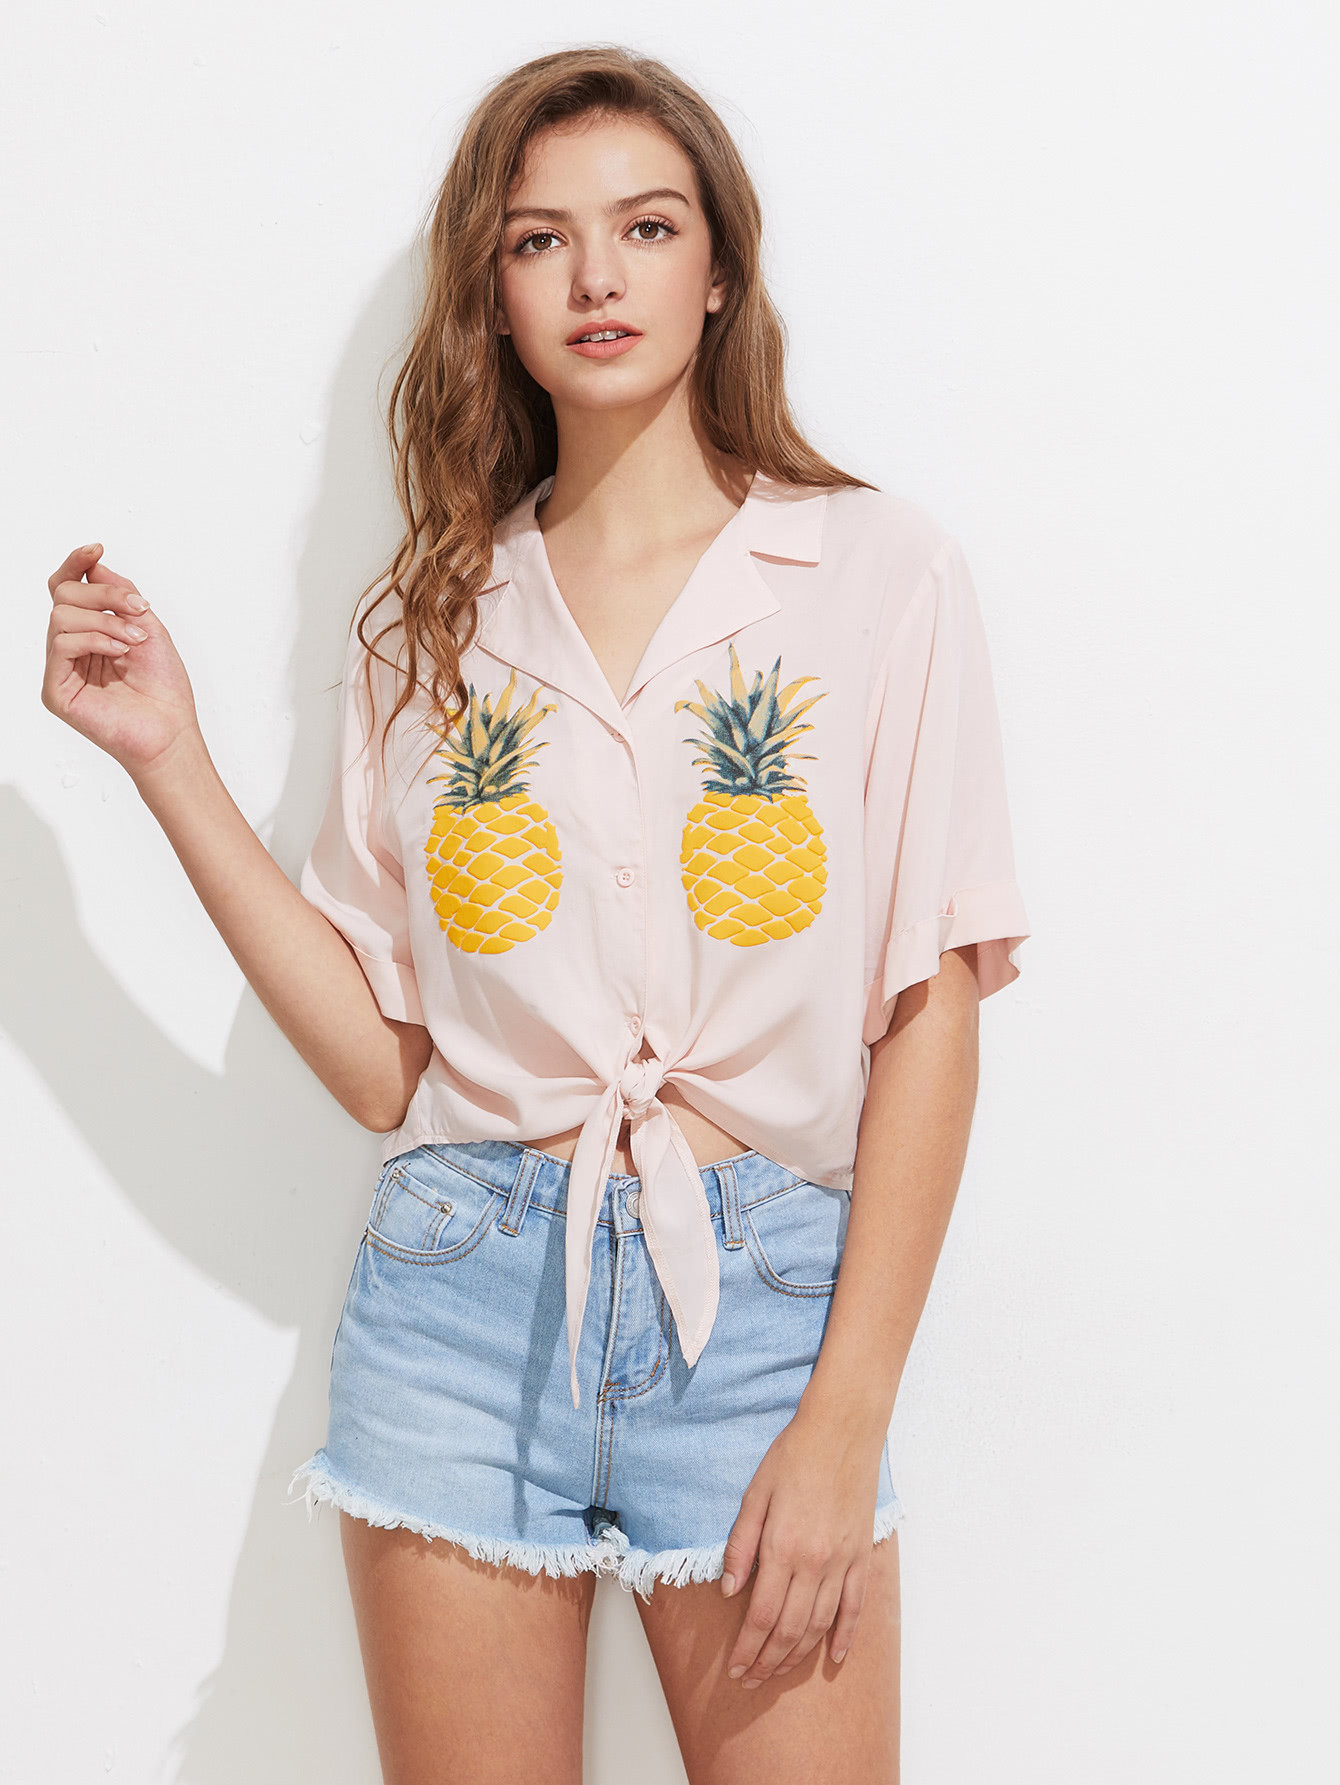 shein-shirt-allbuenothings-summer-must-have